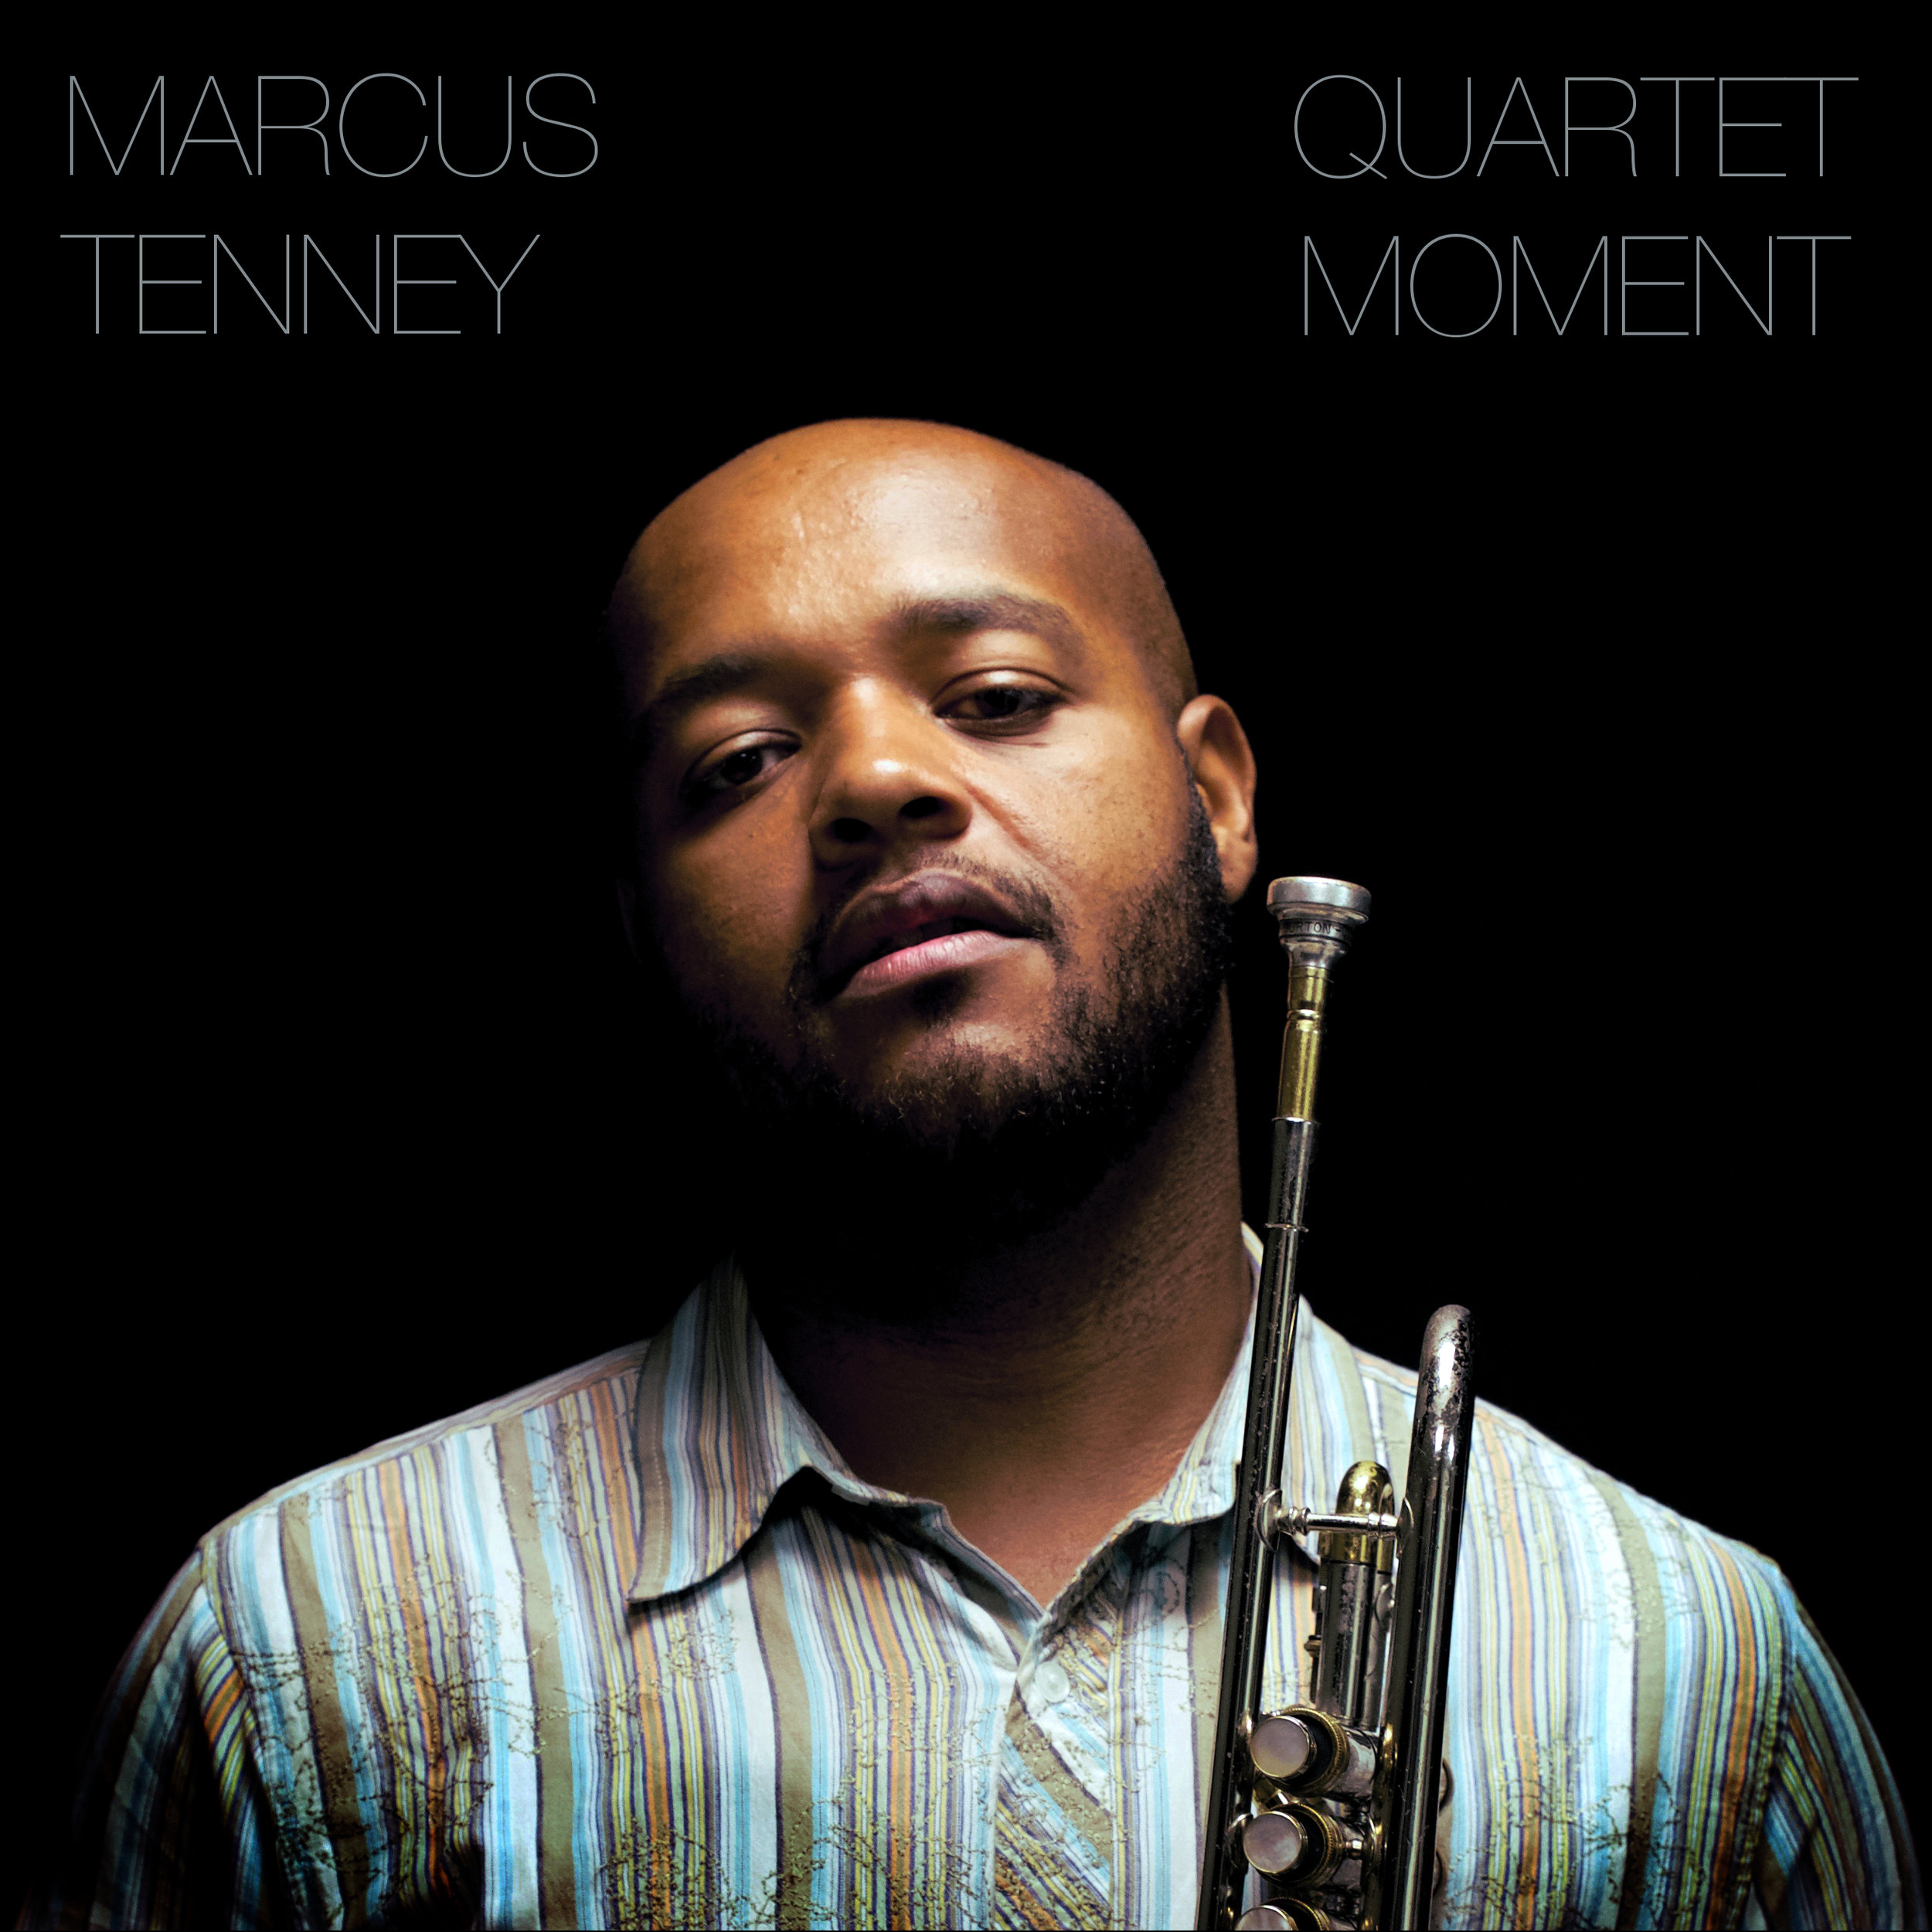 Moment - Marcus Tenney Quartet (American Paradox Music; Artwork by Scott Lane)